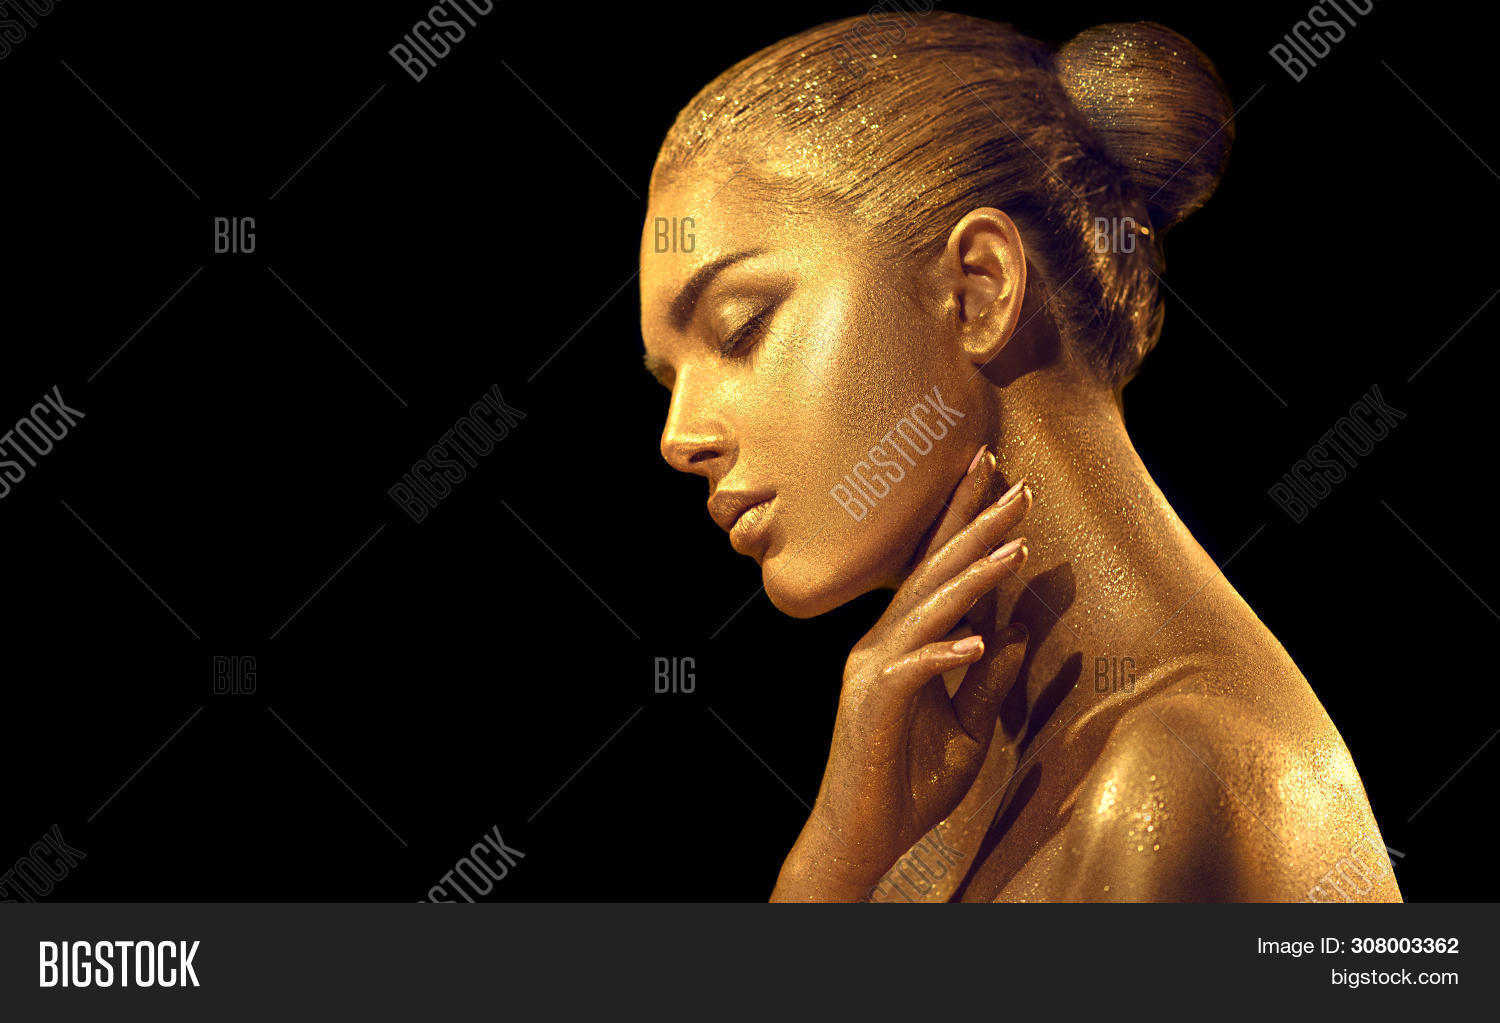 accessories,art,artist,background,beautiful,beauty,black,body,body art,brilliance,coating,covered,eyes,face,fashion,female,girl,glamorous,glamour,glance,glowing,gold,golden,hand,head,holiday,isolated,jewelry,jewels,lips,luster,luxury,make,make-up,makeup,metallic,model,paint,people,portrait,powder,profile,shimmer,shine,shiny,skin,statue,woman,yellow,young